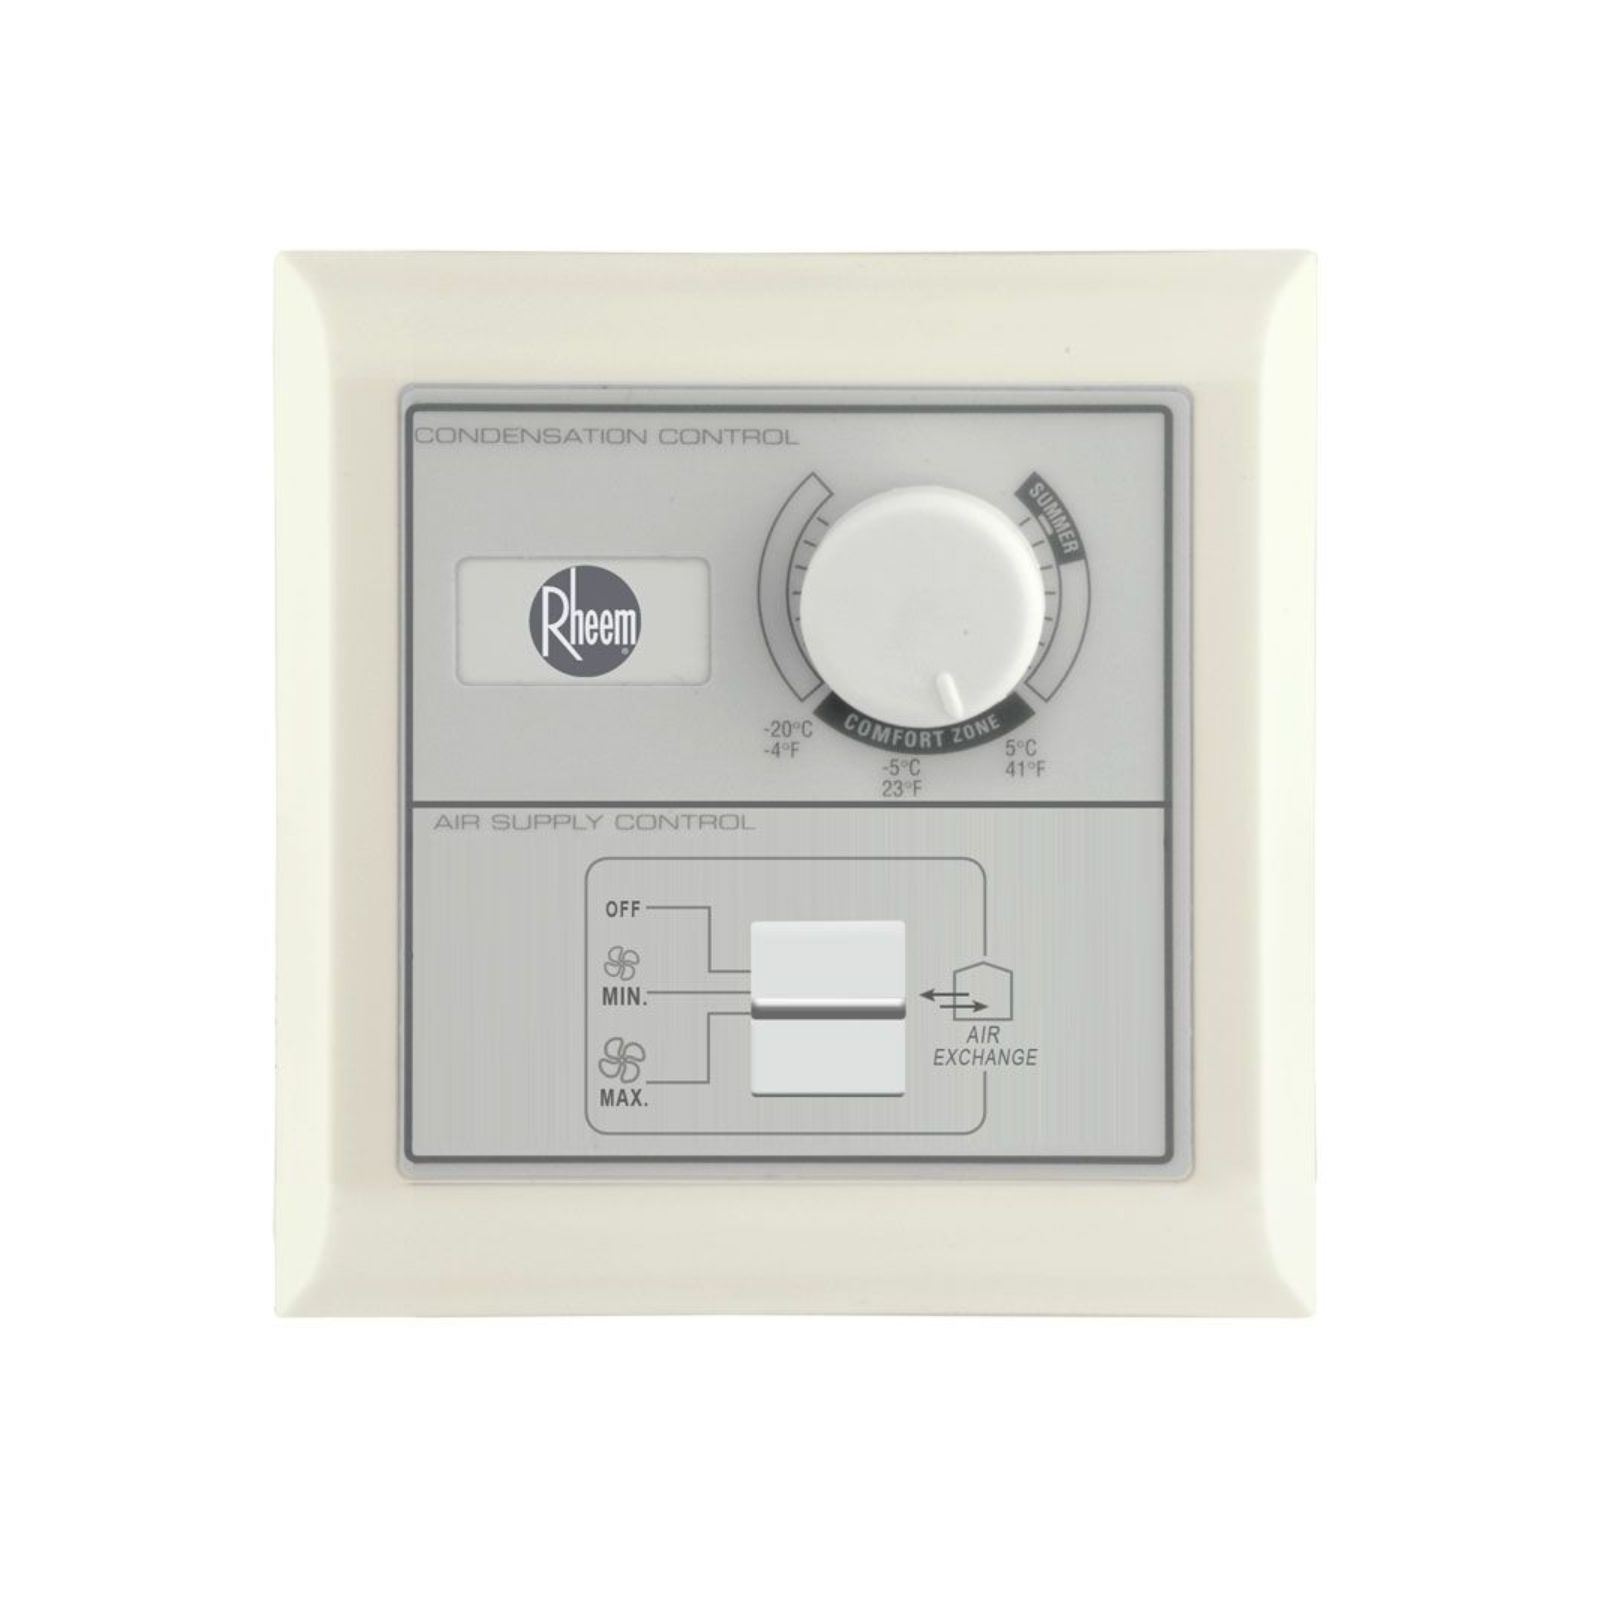 PROTECH 41-40210-01 - Economy Wall Control